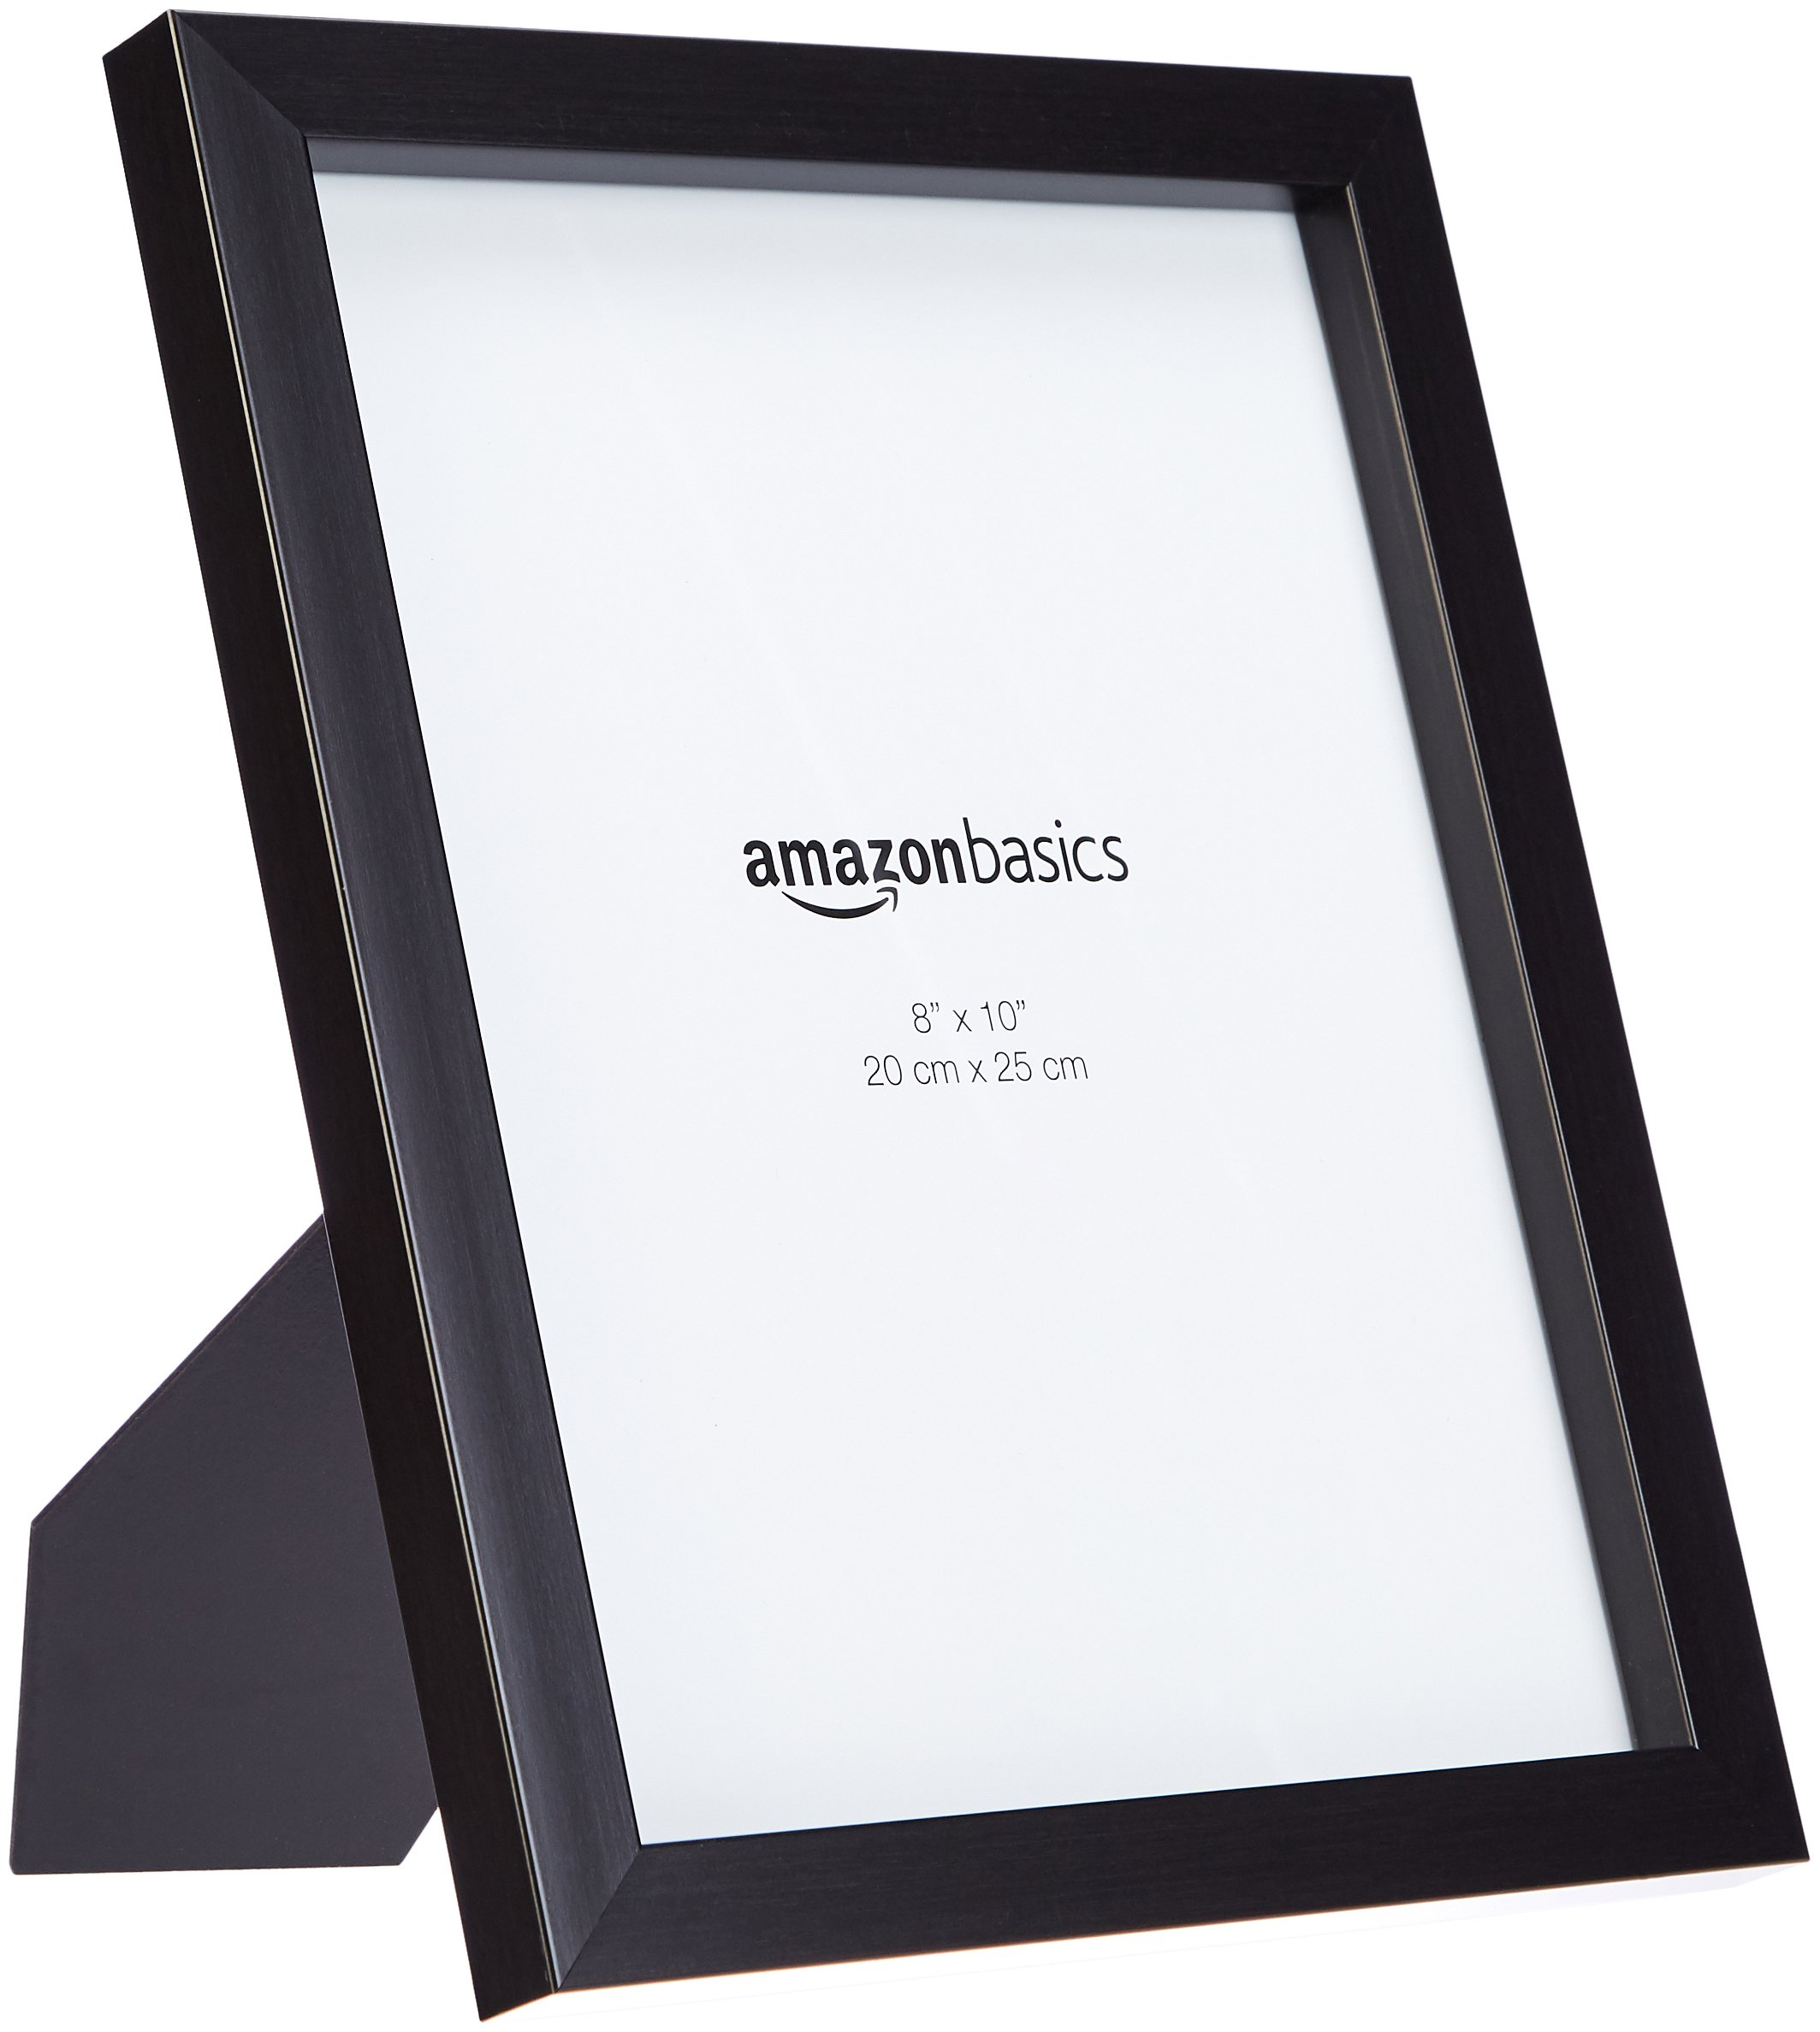 AmazonBasics Photo Picture Frame - 8'' x 10'', Black, 2-Pack by AmazonBasics (Image #4)